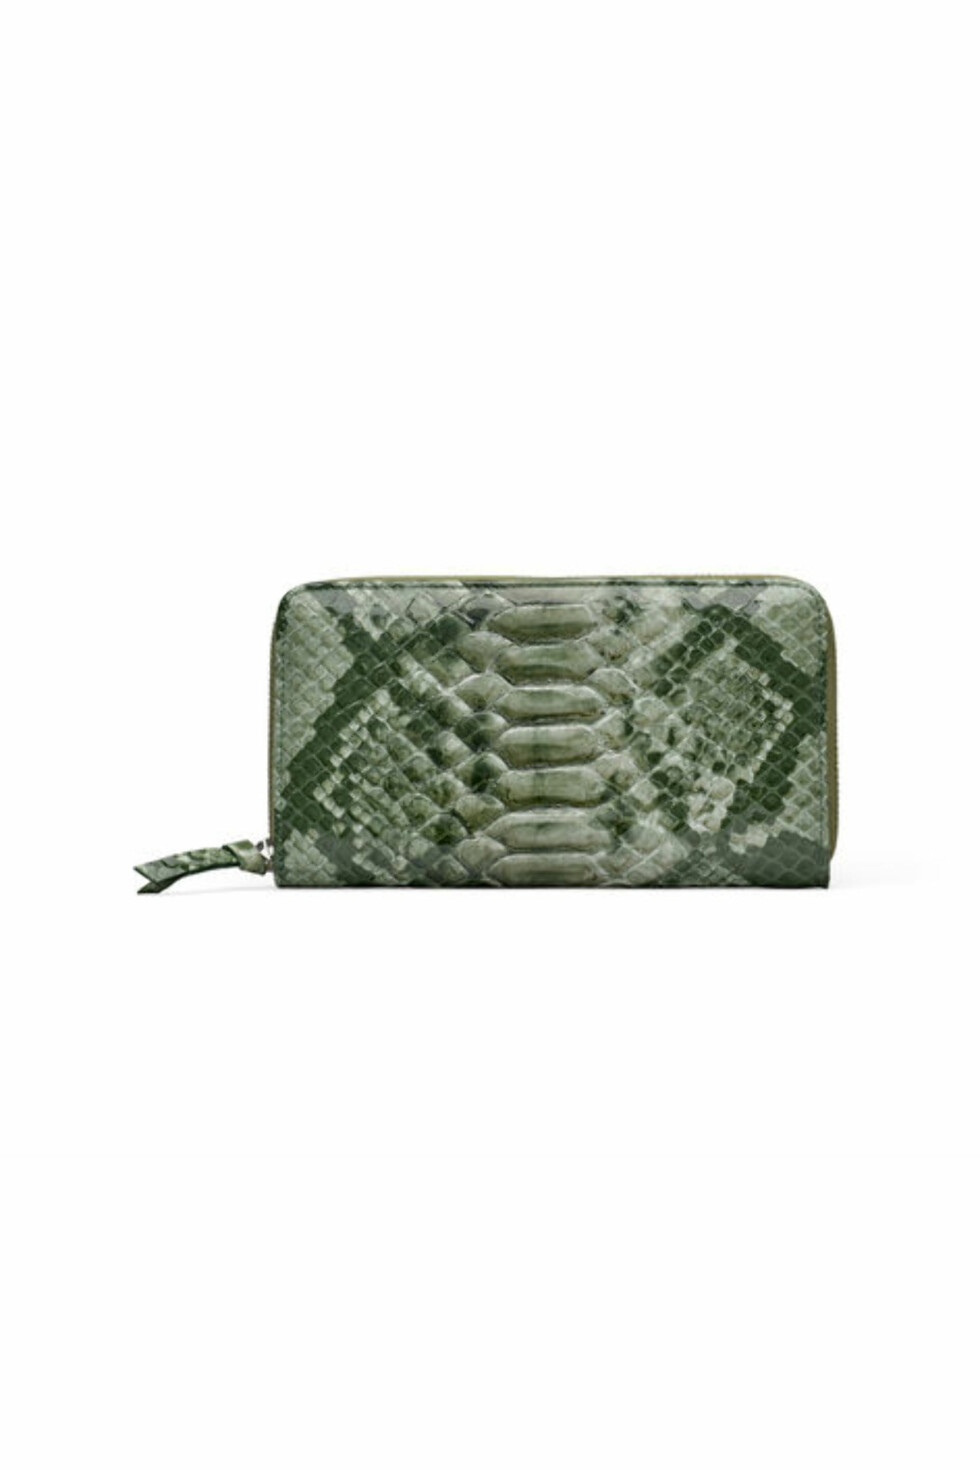 Lommebok fra Ganni | kr 1749 | http://www.ganni.com/shop/bags/gallery-accessories-purse/A0839.html?dwvar_A0839_color=Botanical%20Snake